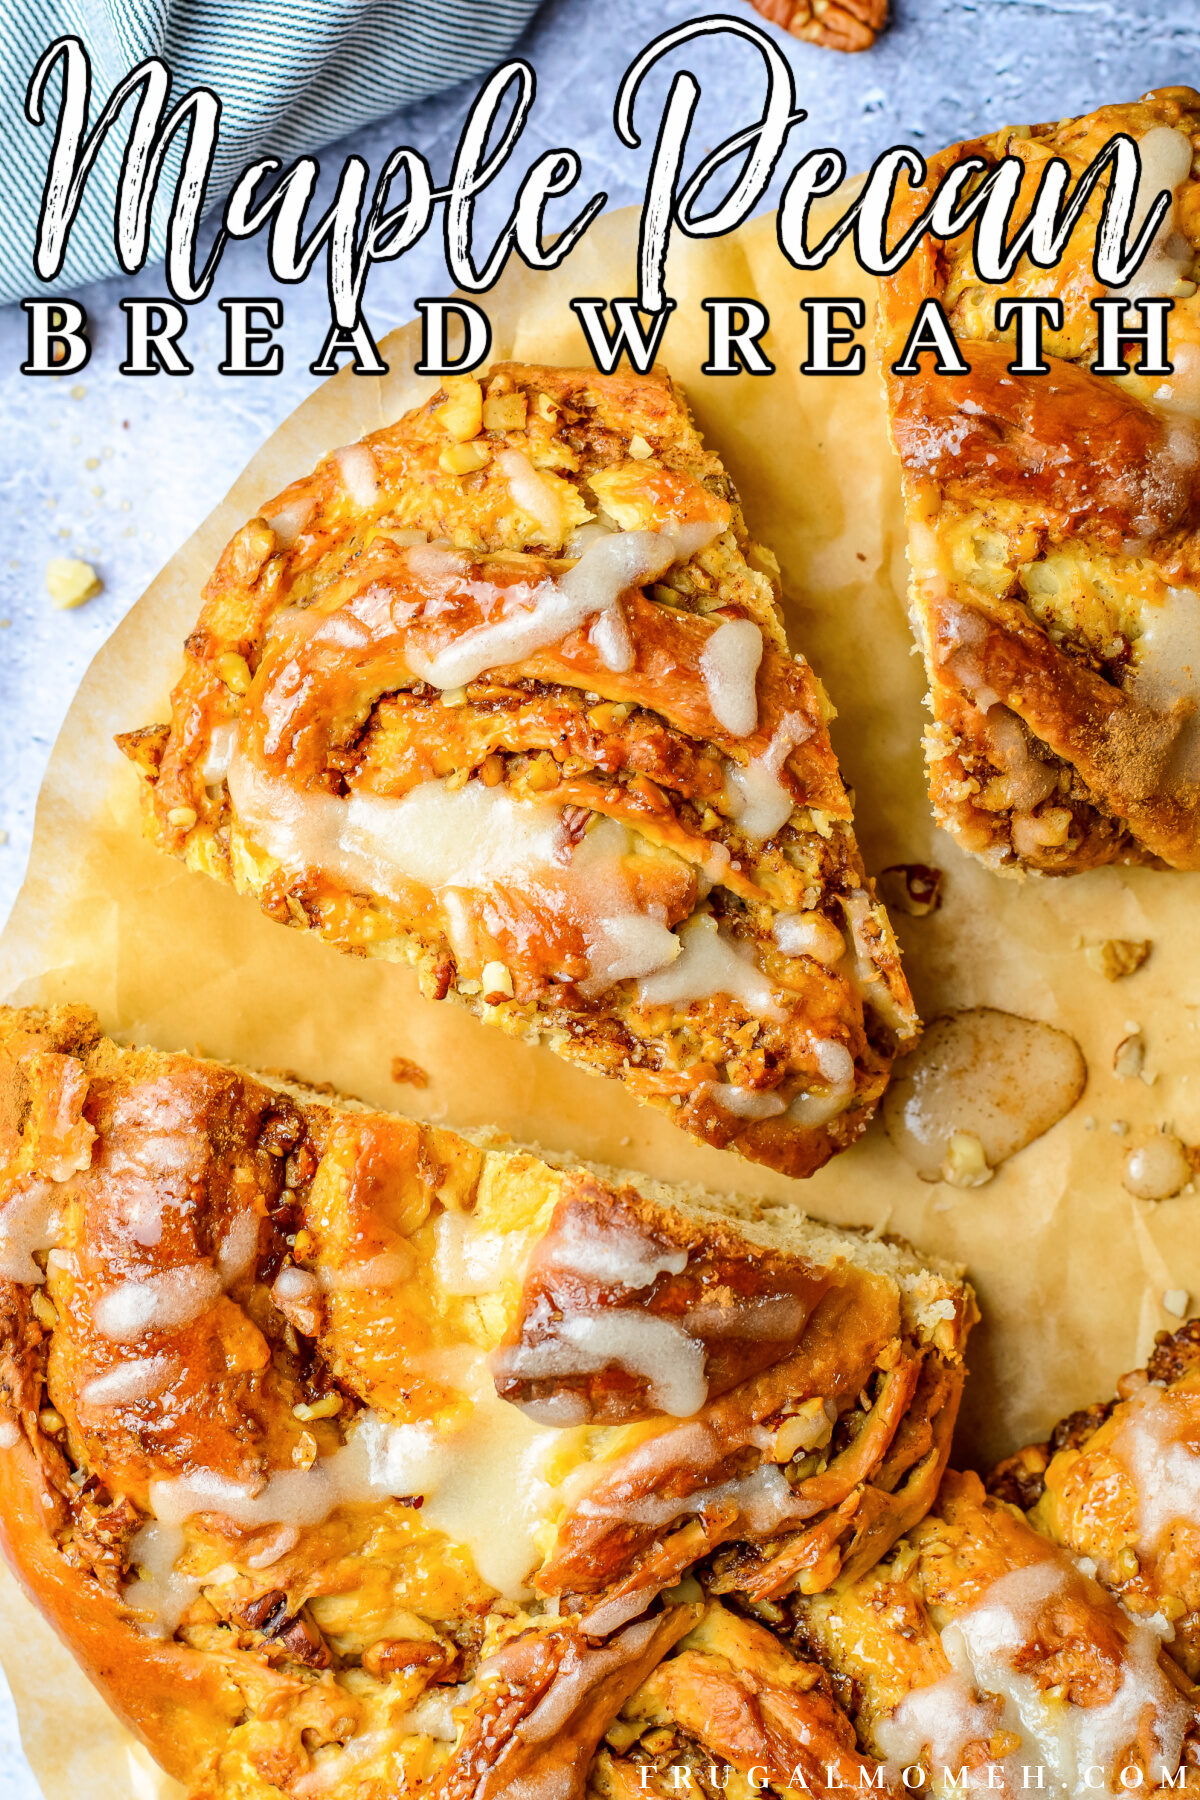 This Maple Pecan Wreath Bread is made up of soft and fluffy yeast dough with a cinnamon pecan filling, all topped with a sweet maple glaze.